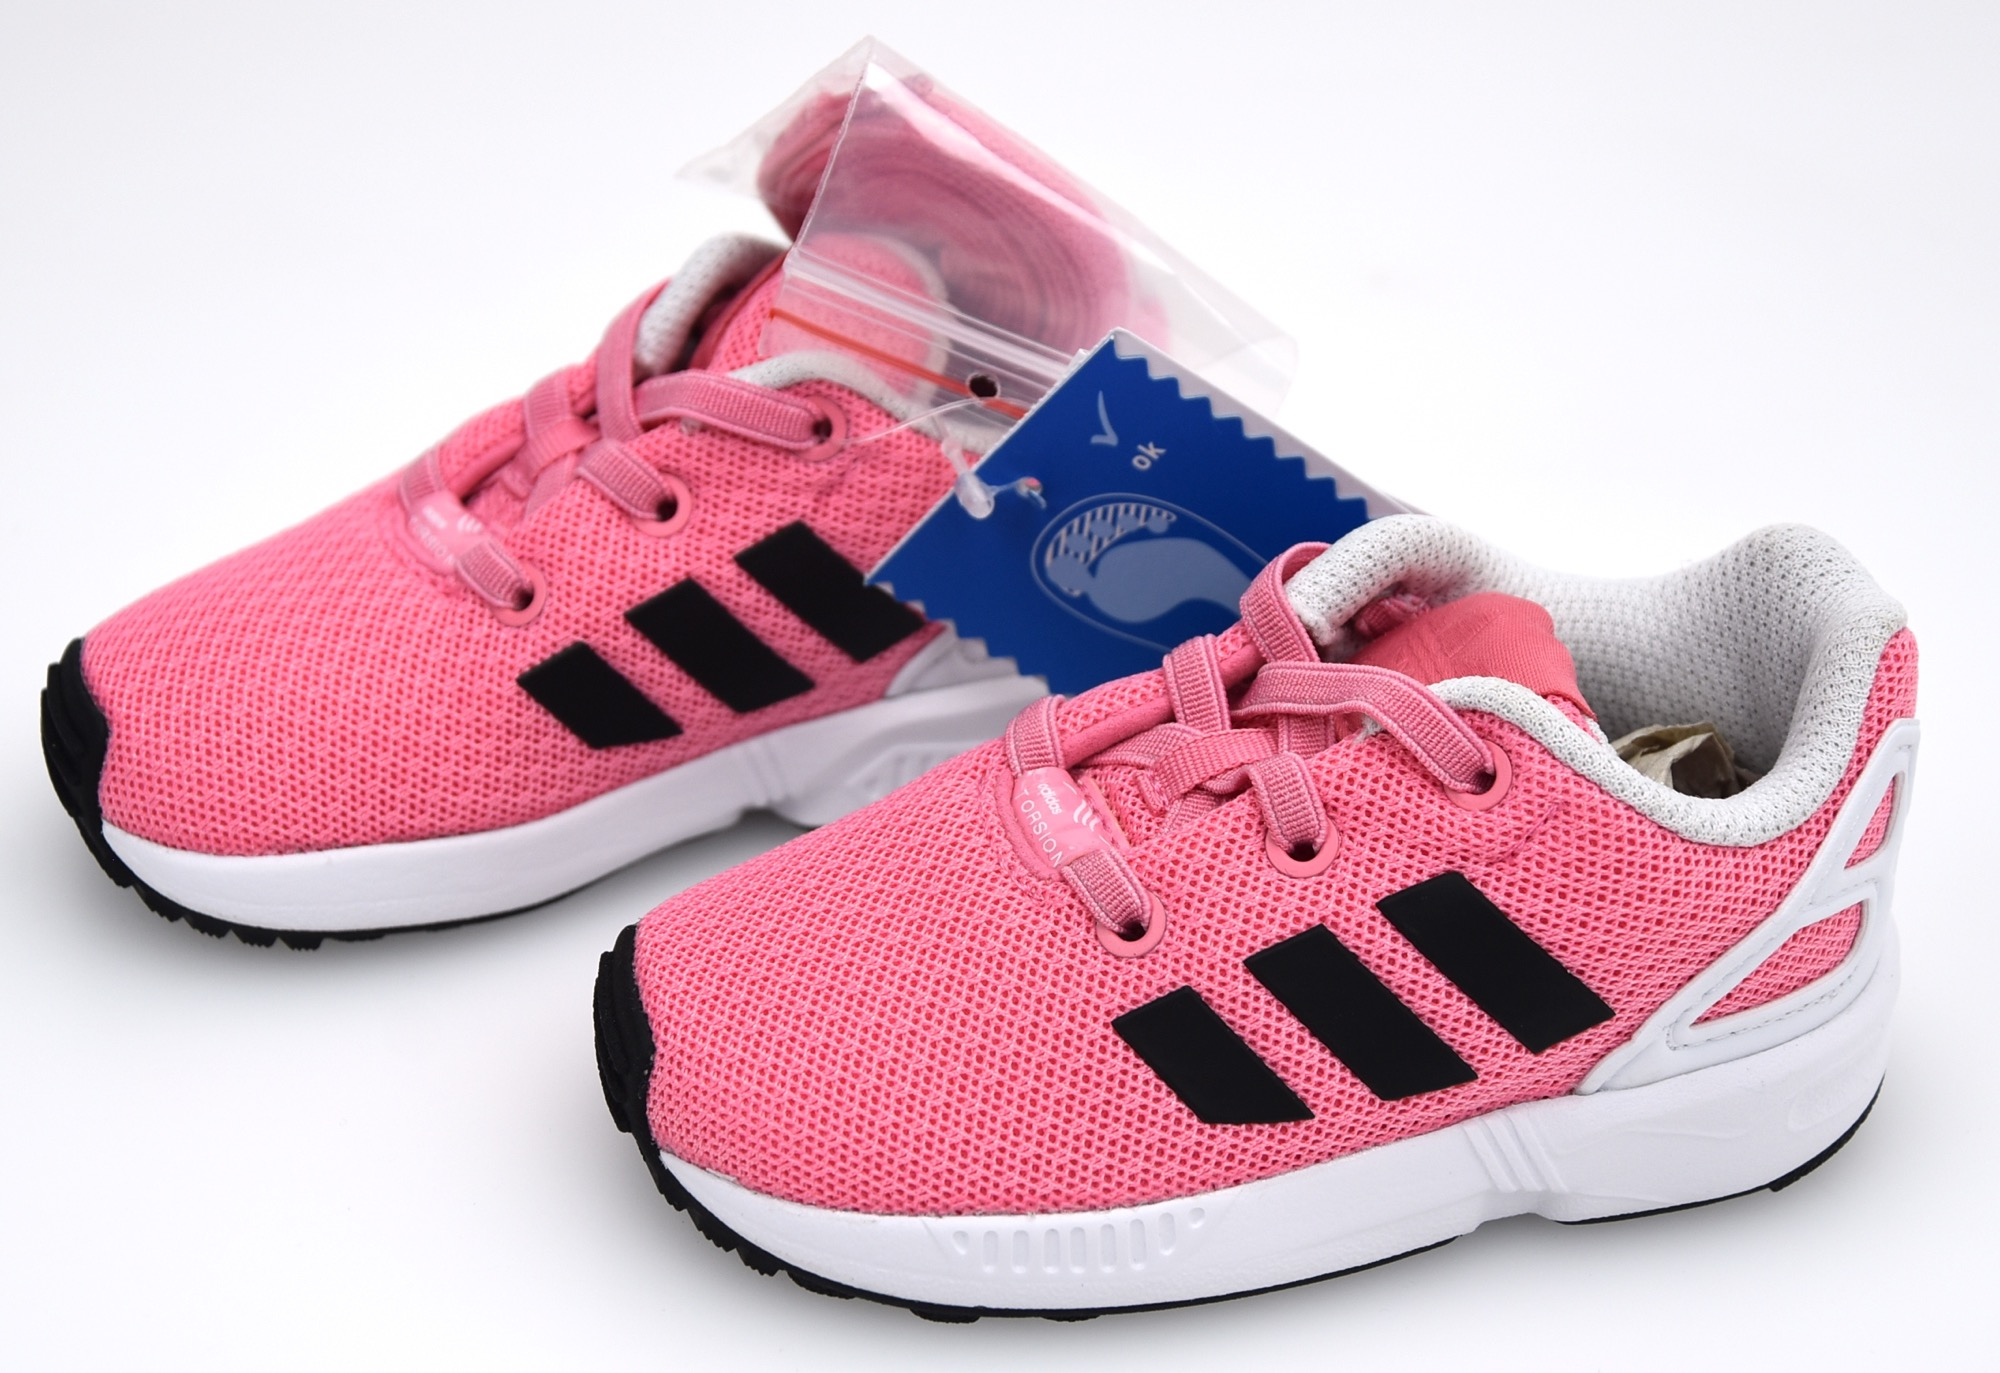 finest selection fe0f2 2d5e5 ADIDAS JUNIOR BOY GIRL SNEAKER SHOES CASUAL CODE BB2433 - BB2432 ZX FLUX EL  I